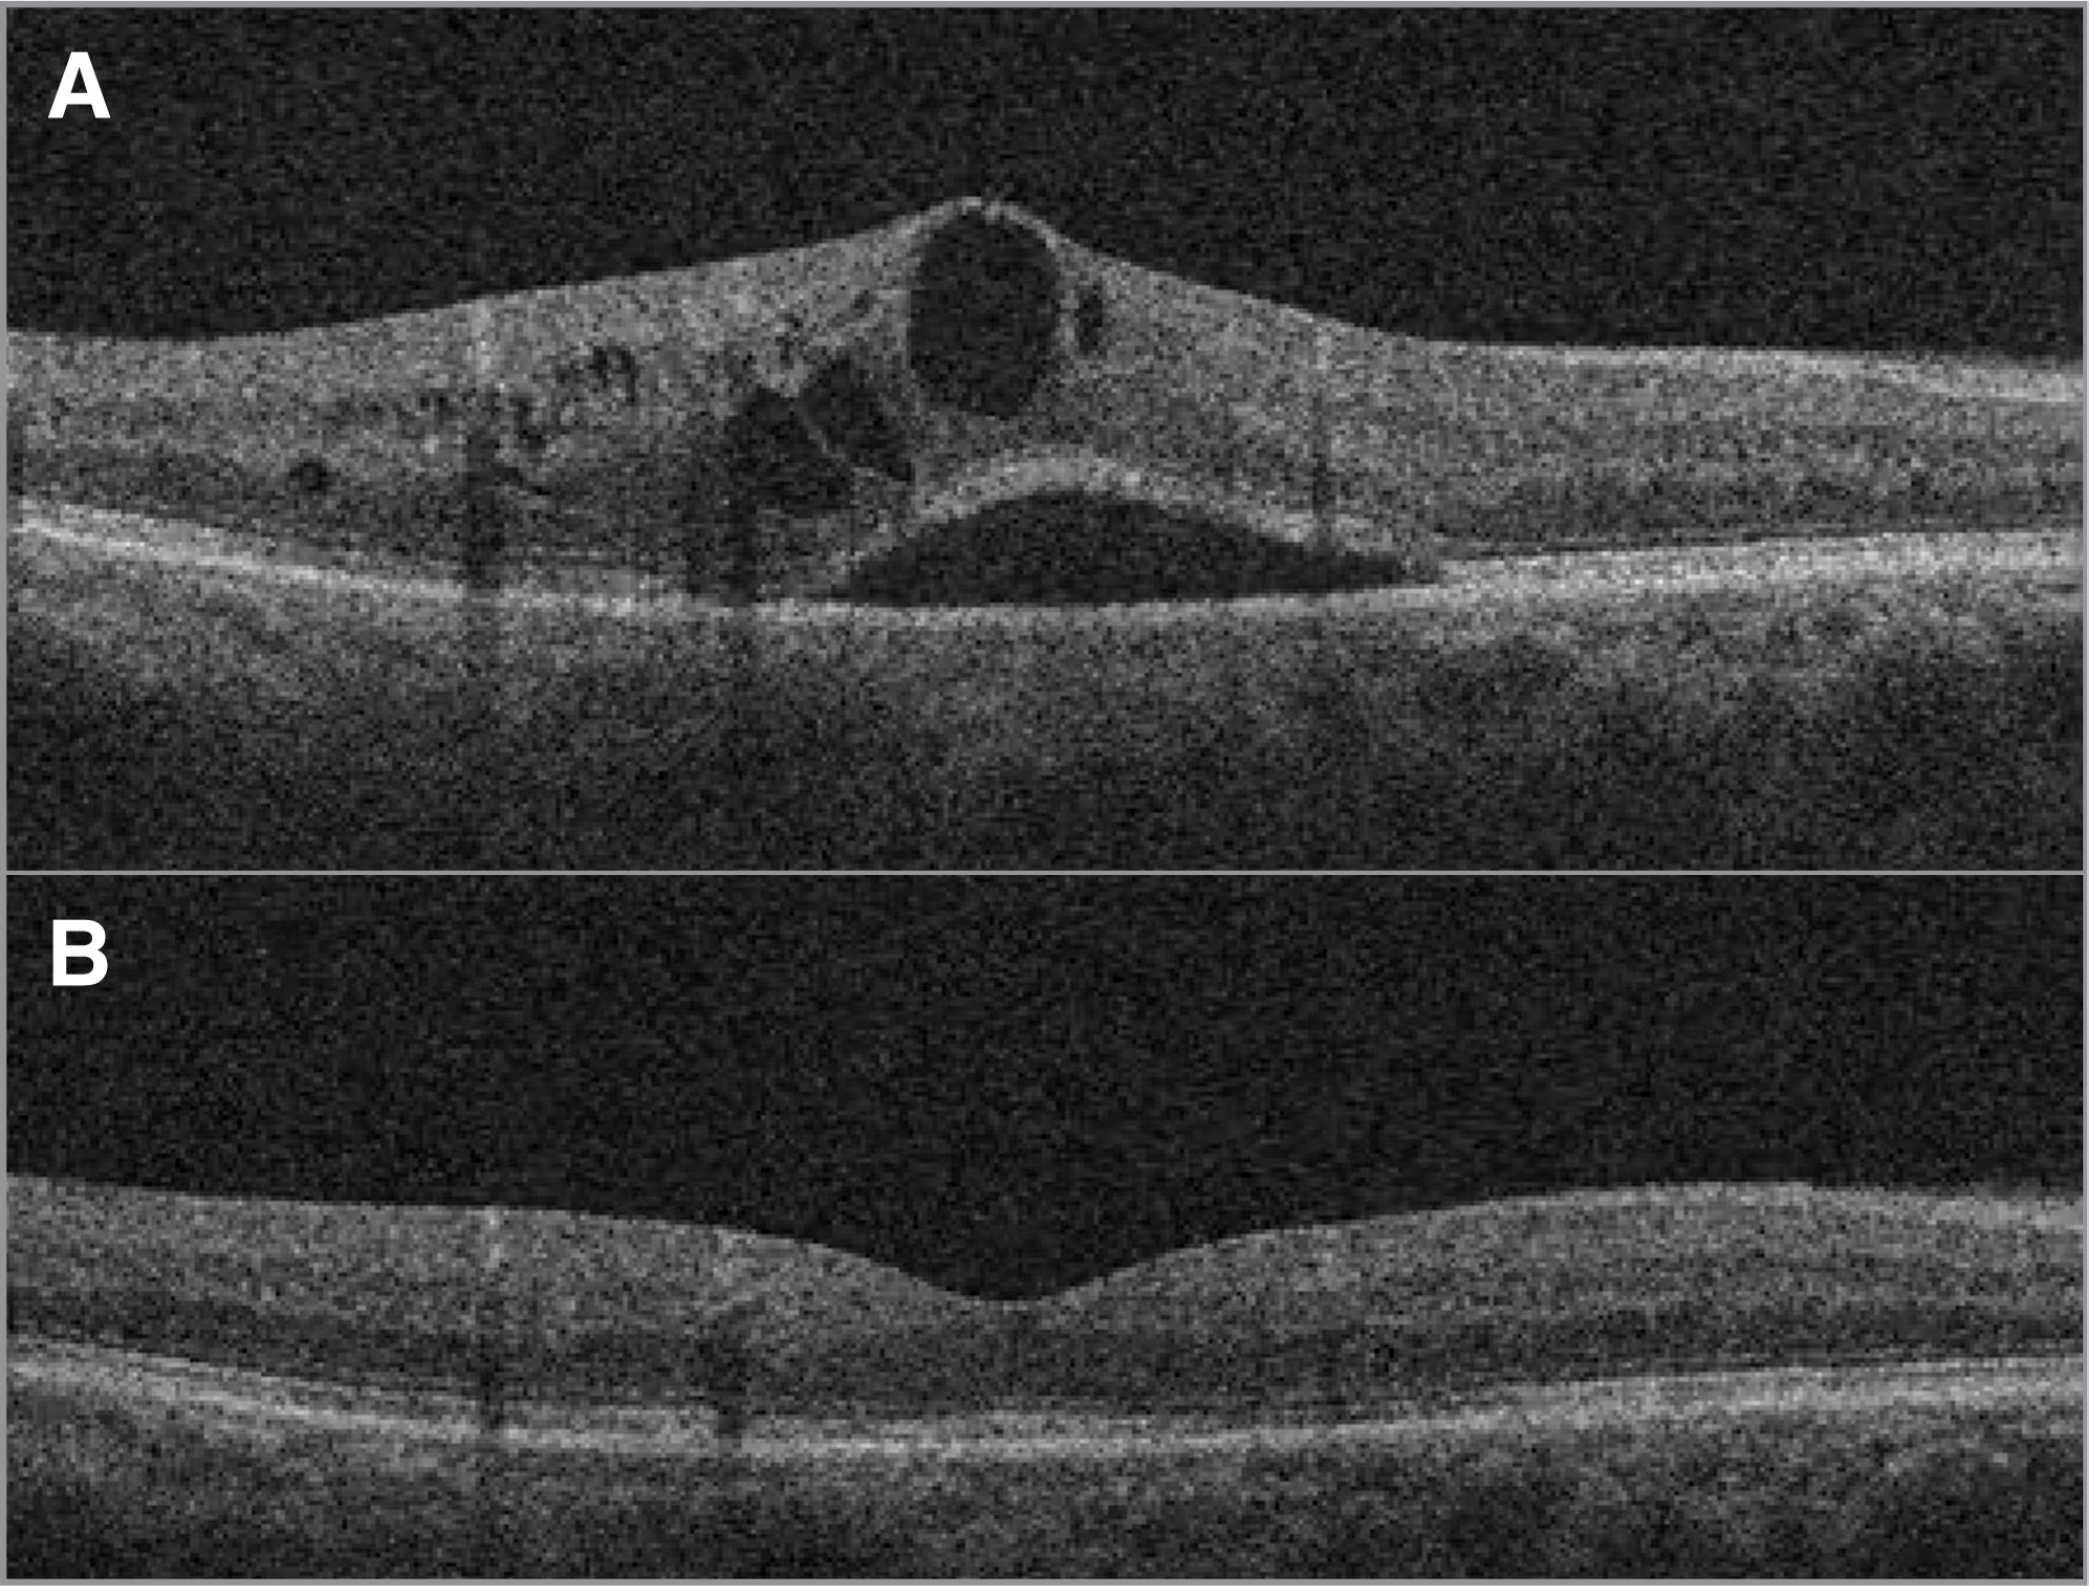 (a) Postoperative cystoid macular edema prior to treatment, with cystic changes throughout the retinal layers and in the subretinal space. (b) Same patient 14 weeks after sub-Tenon's triamcinolone acetonide, demonstrating full resolution of edema and normalization of foveal contour.